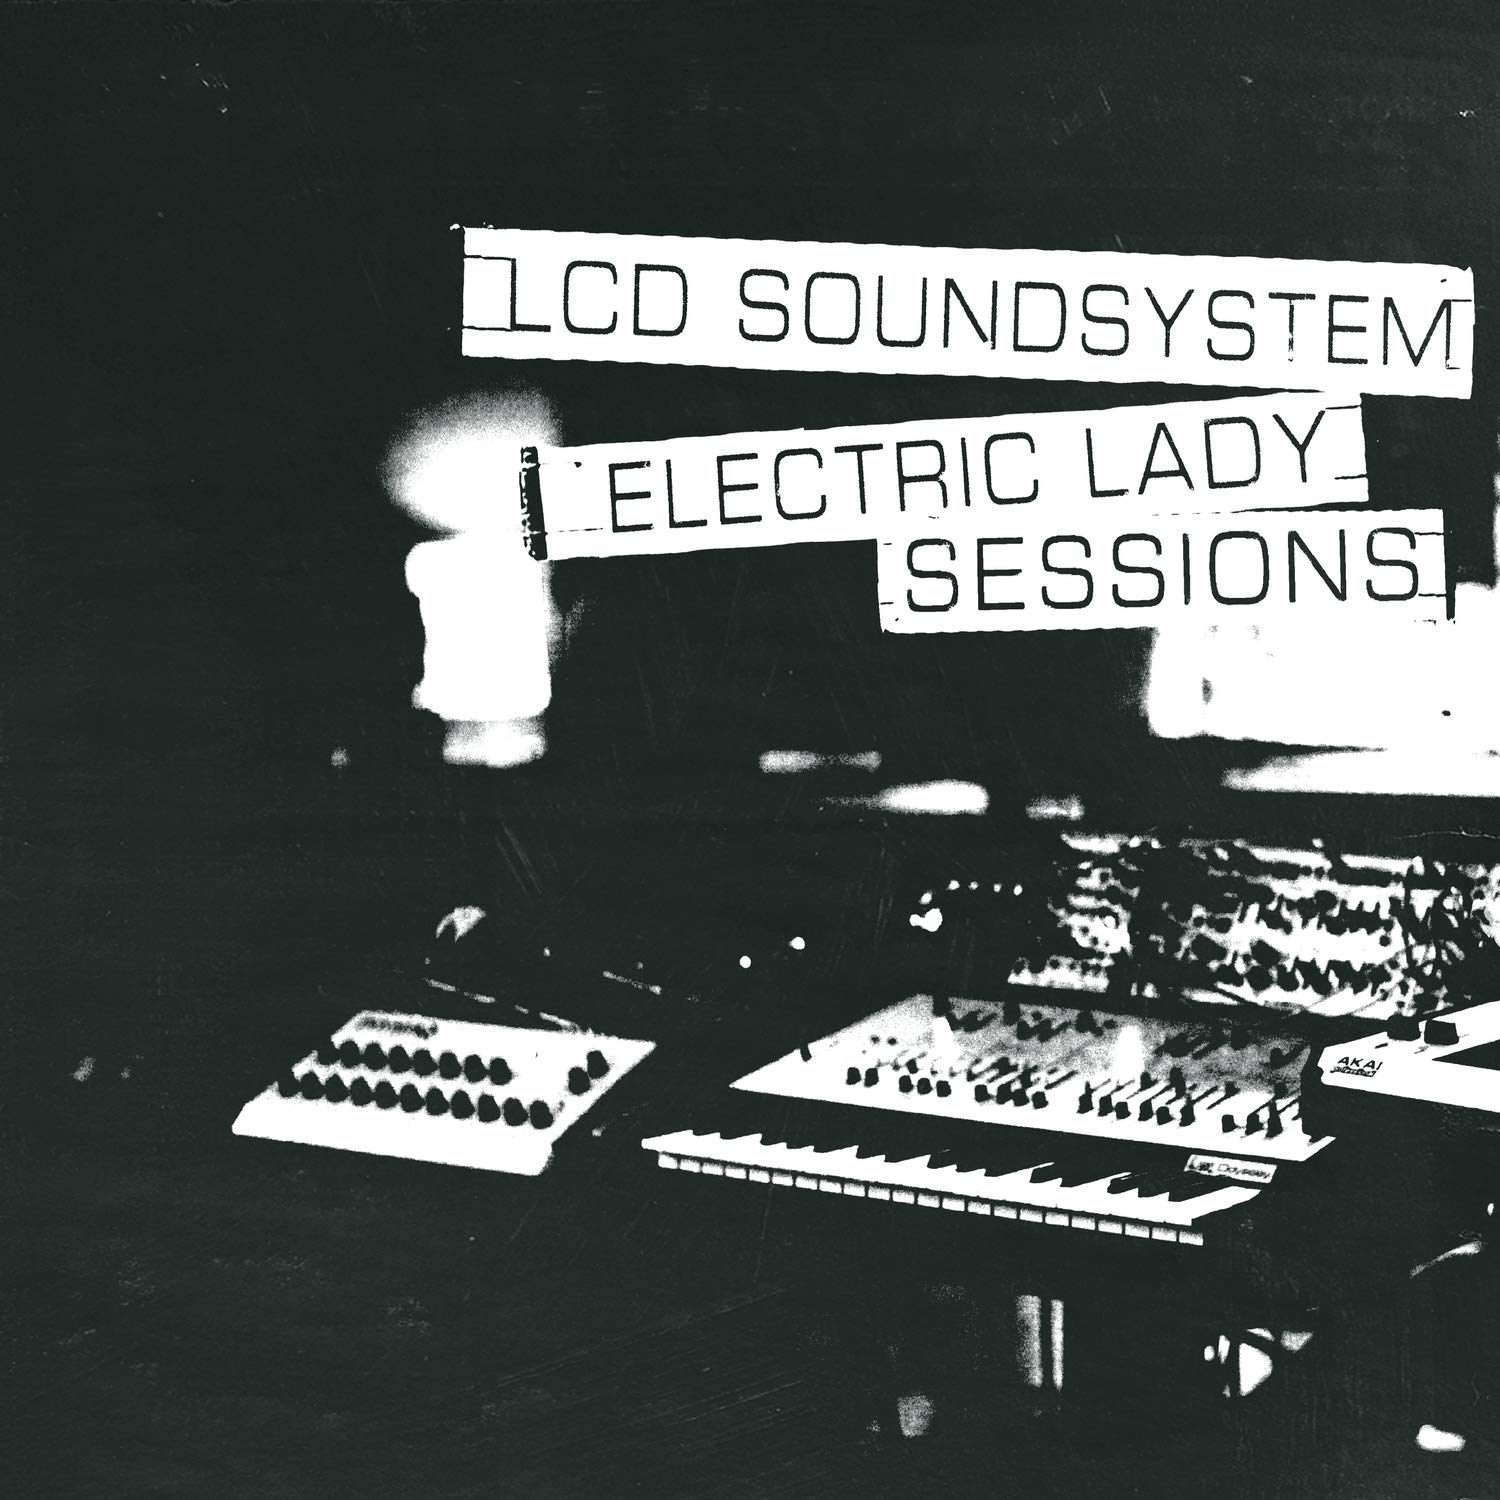 Studios In Nycs Greenwich Village Electric Lady Sessions Is A Live Collection Featuring Cl Ic Lcd Soundsystem Songs Three Covers And Newer Material